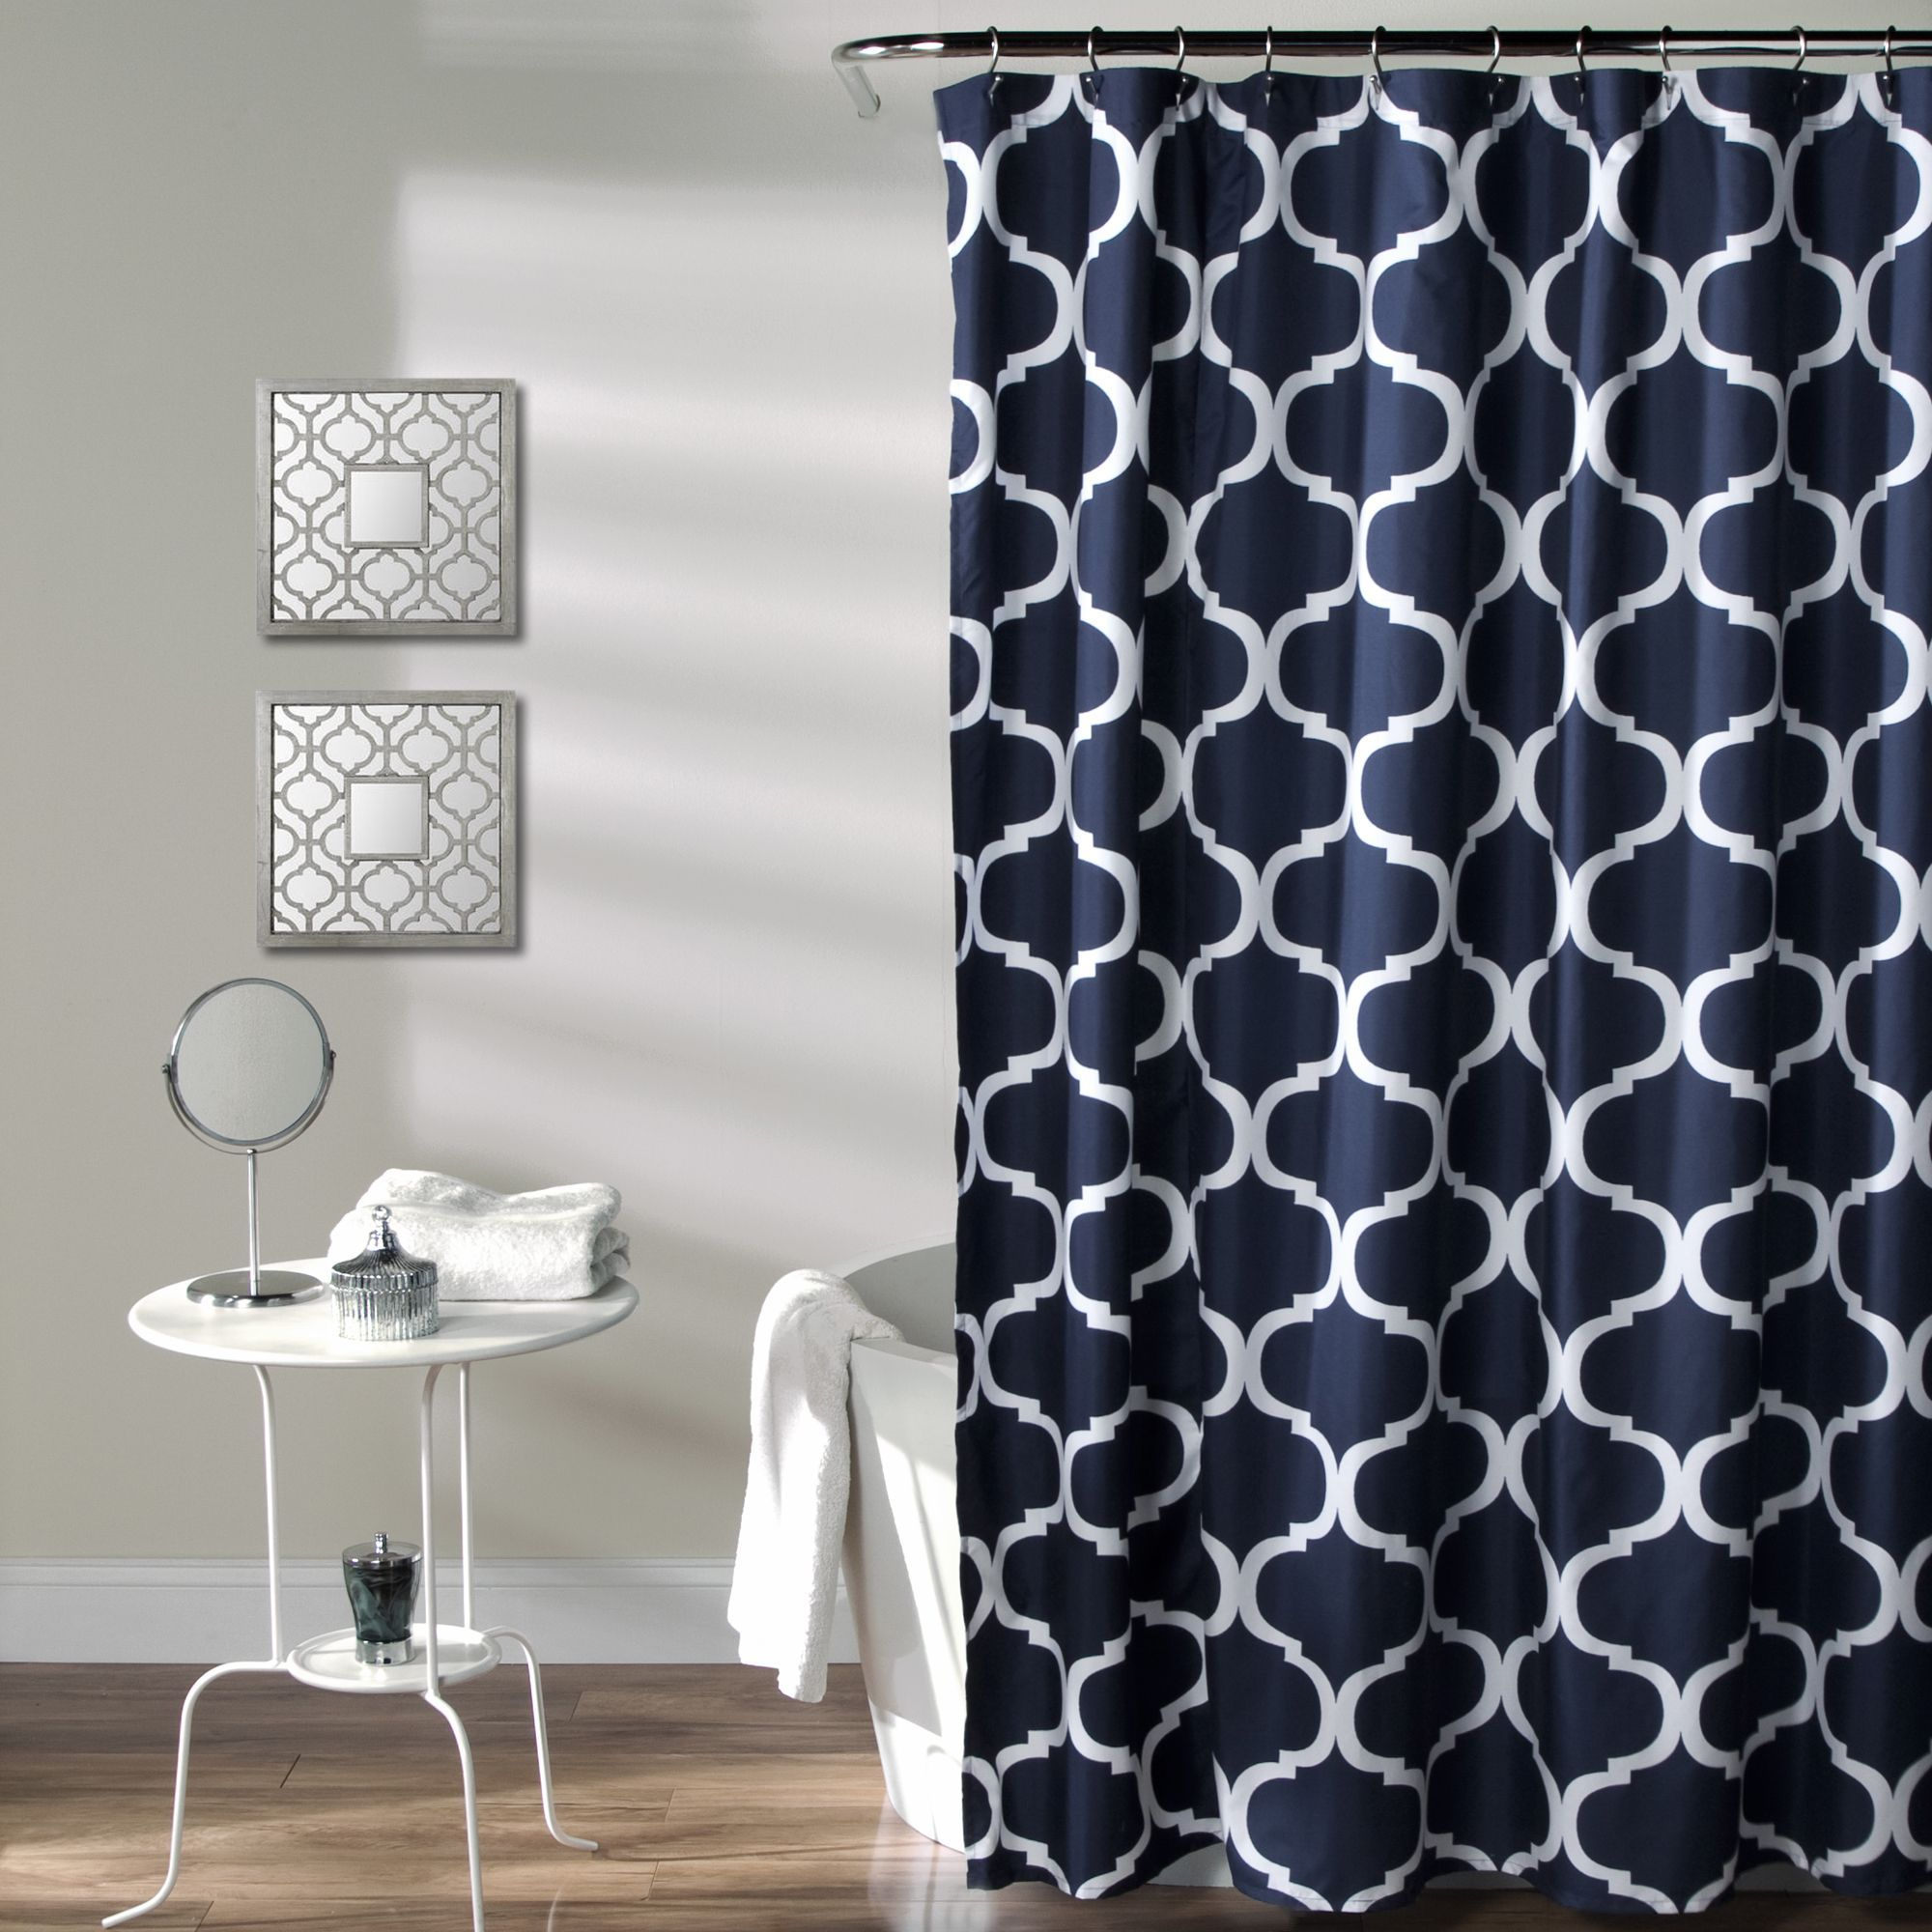 Chic and versatile this lush decor shower curtain is sure to liven